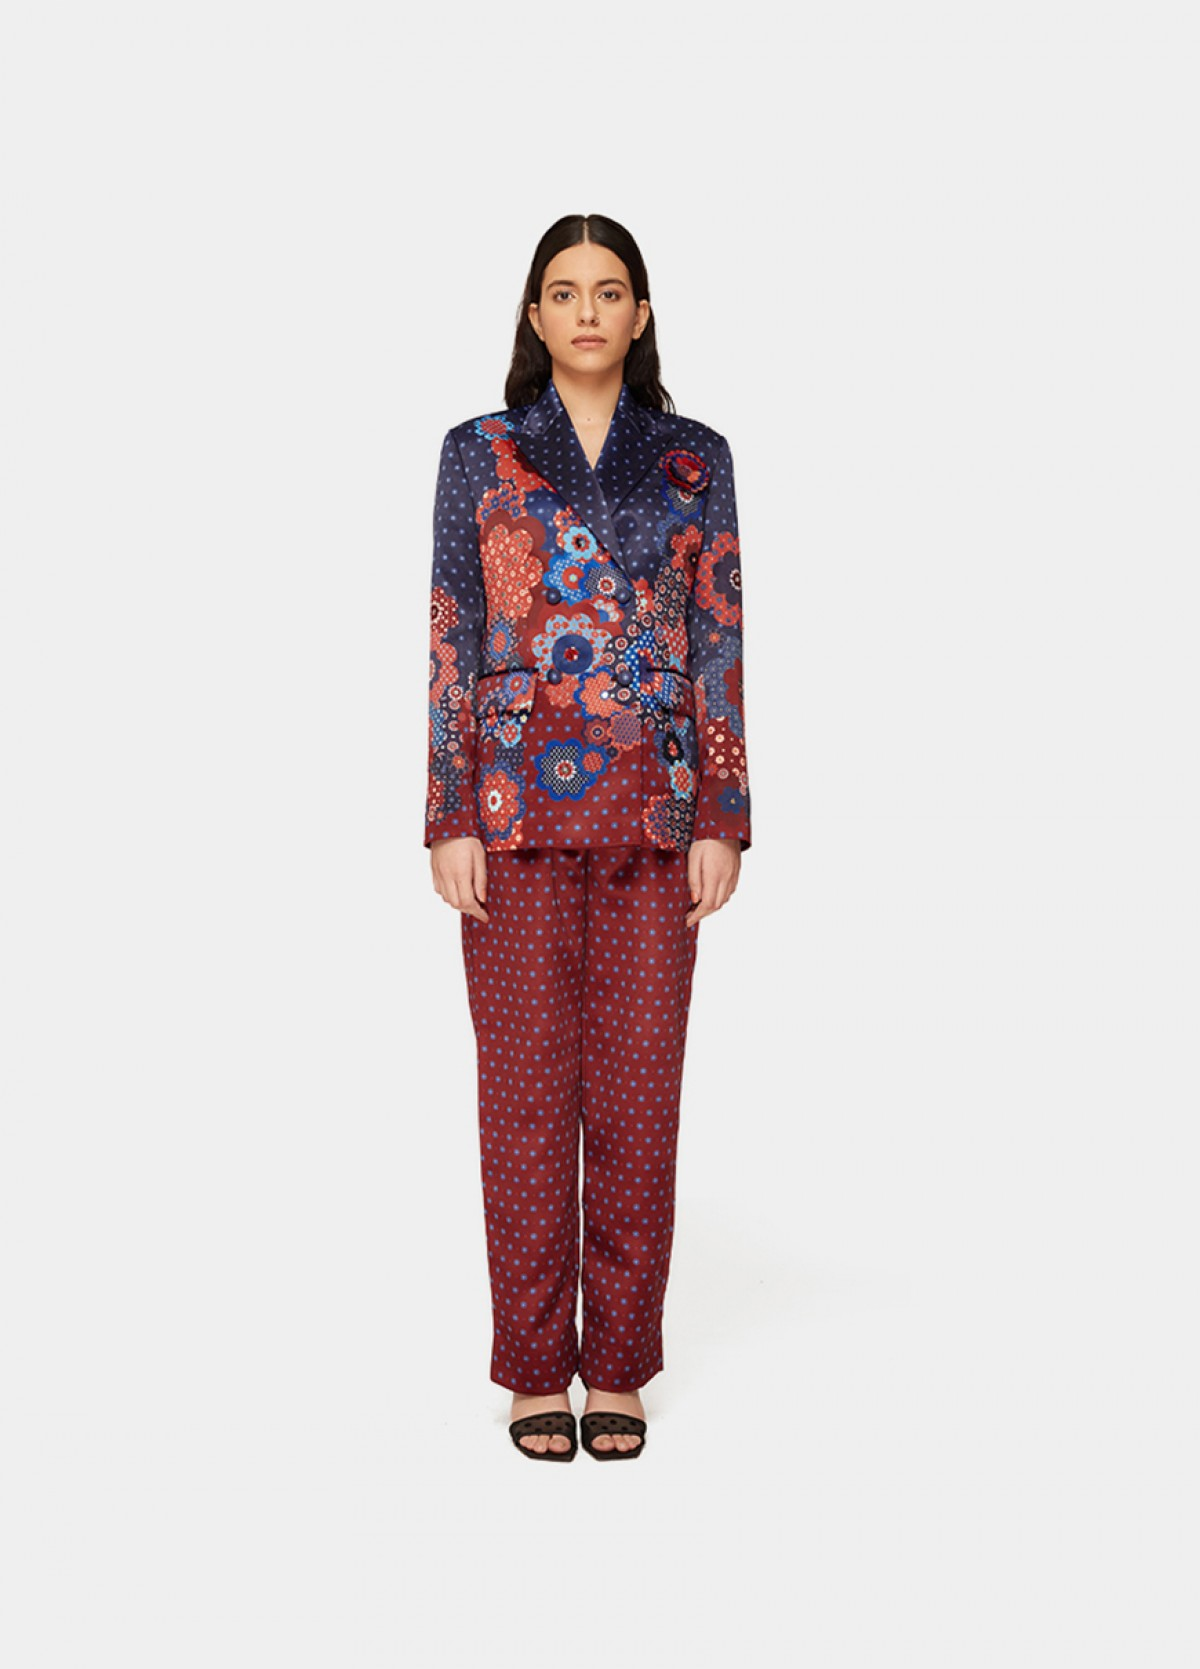 The Valley of Flowers Pant Suit